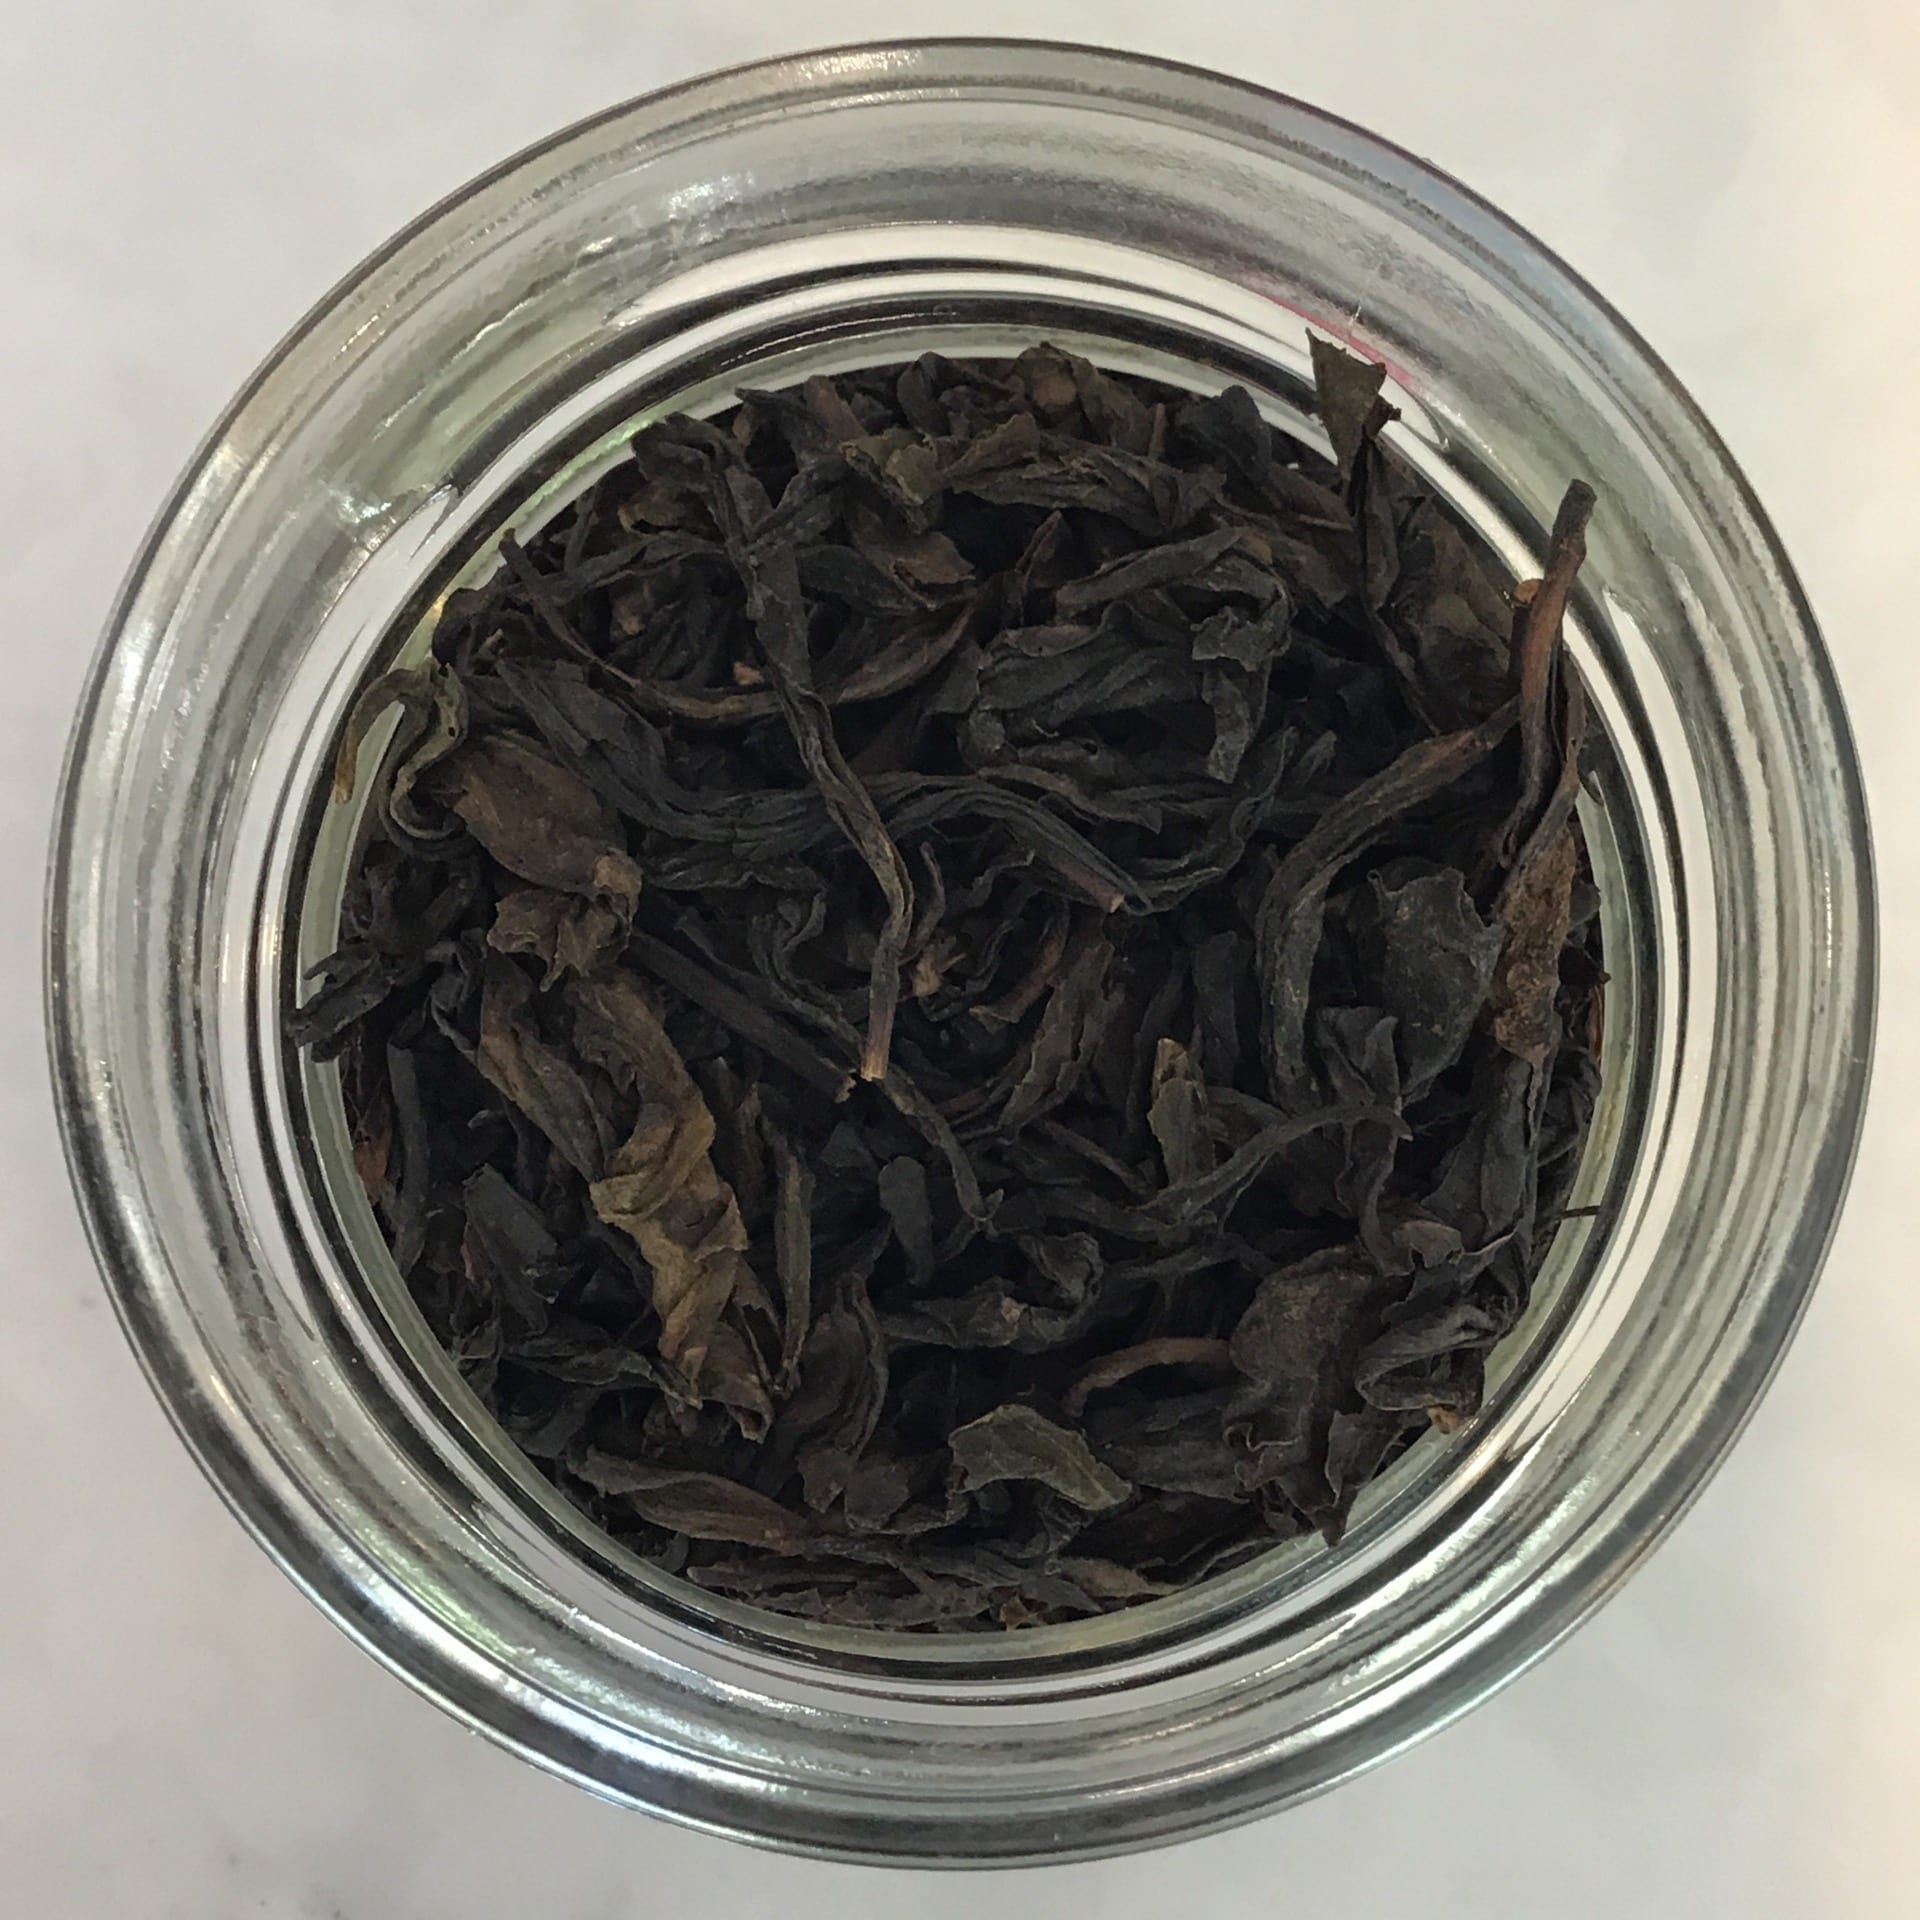 Organic Loose-leaf Oolong Tea a good black tea to use for Kombucha!